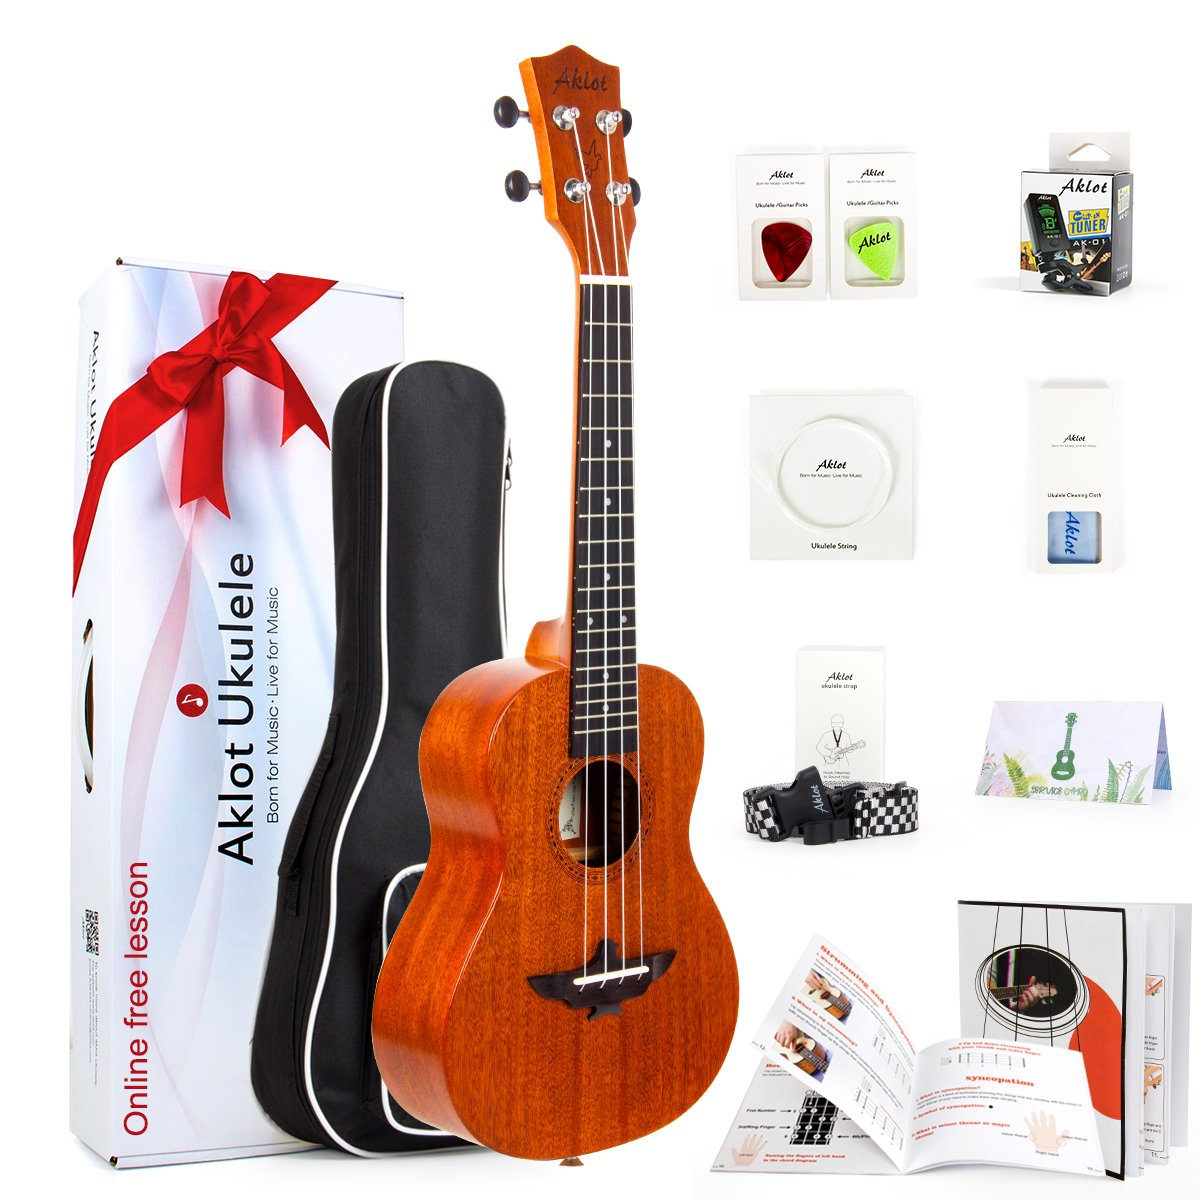 Ukulele Solid Mahogany 23 Inch Concert Uke With Free Online Course 8 Packs Beginner Starter Kit (Gig Bag Picks Tuner Strap String Cleaning Cloth Instruction Book) by Aklot